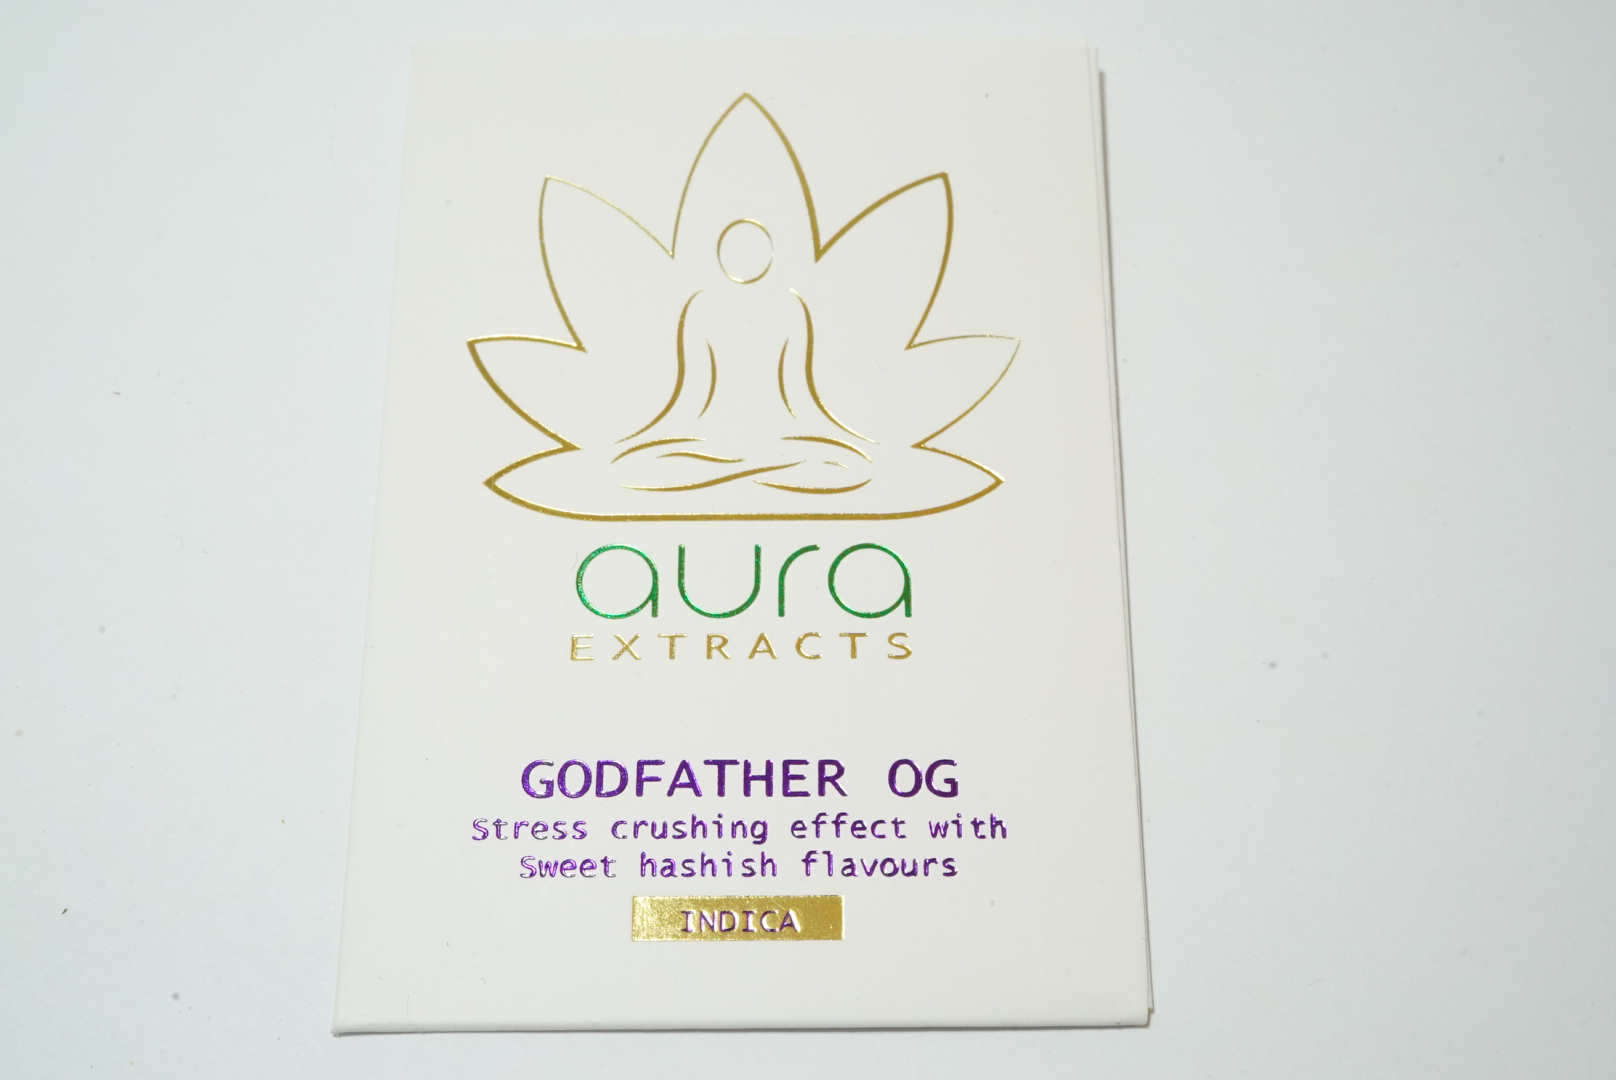 Aura Extracts Shatter by Get Kush - Image © 2018 Get Kush. All Rights Reserved.